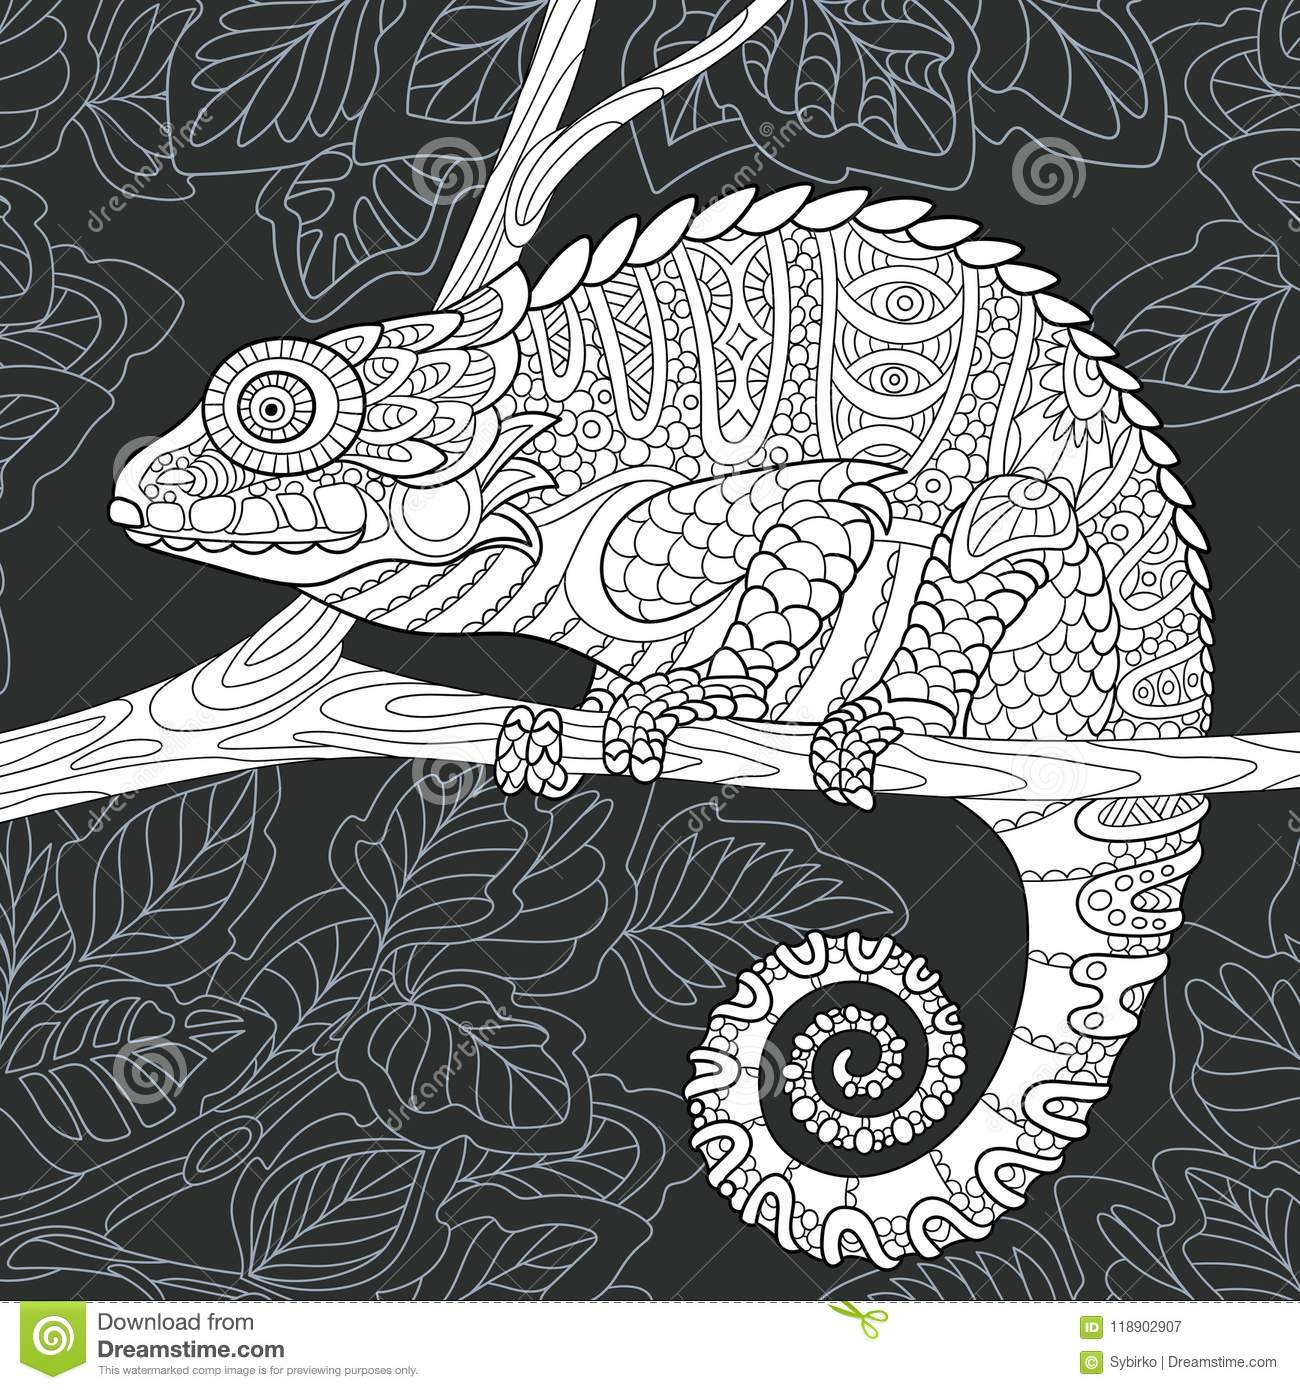 Chameleon Style Chameleon In Black And White Style Stock Vector Illustration Of